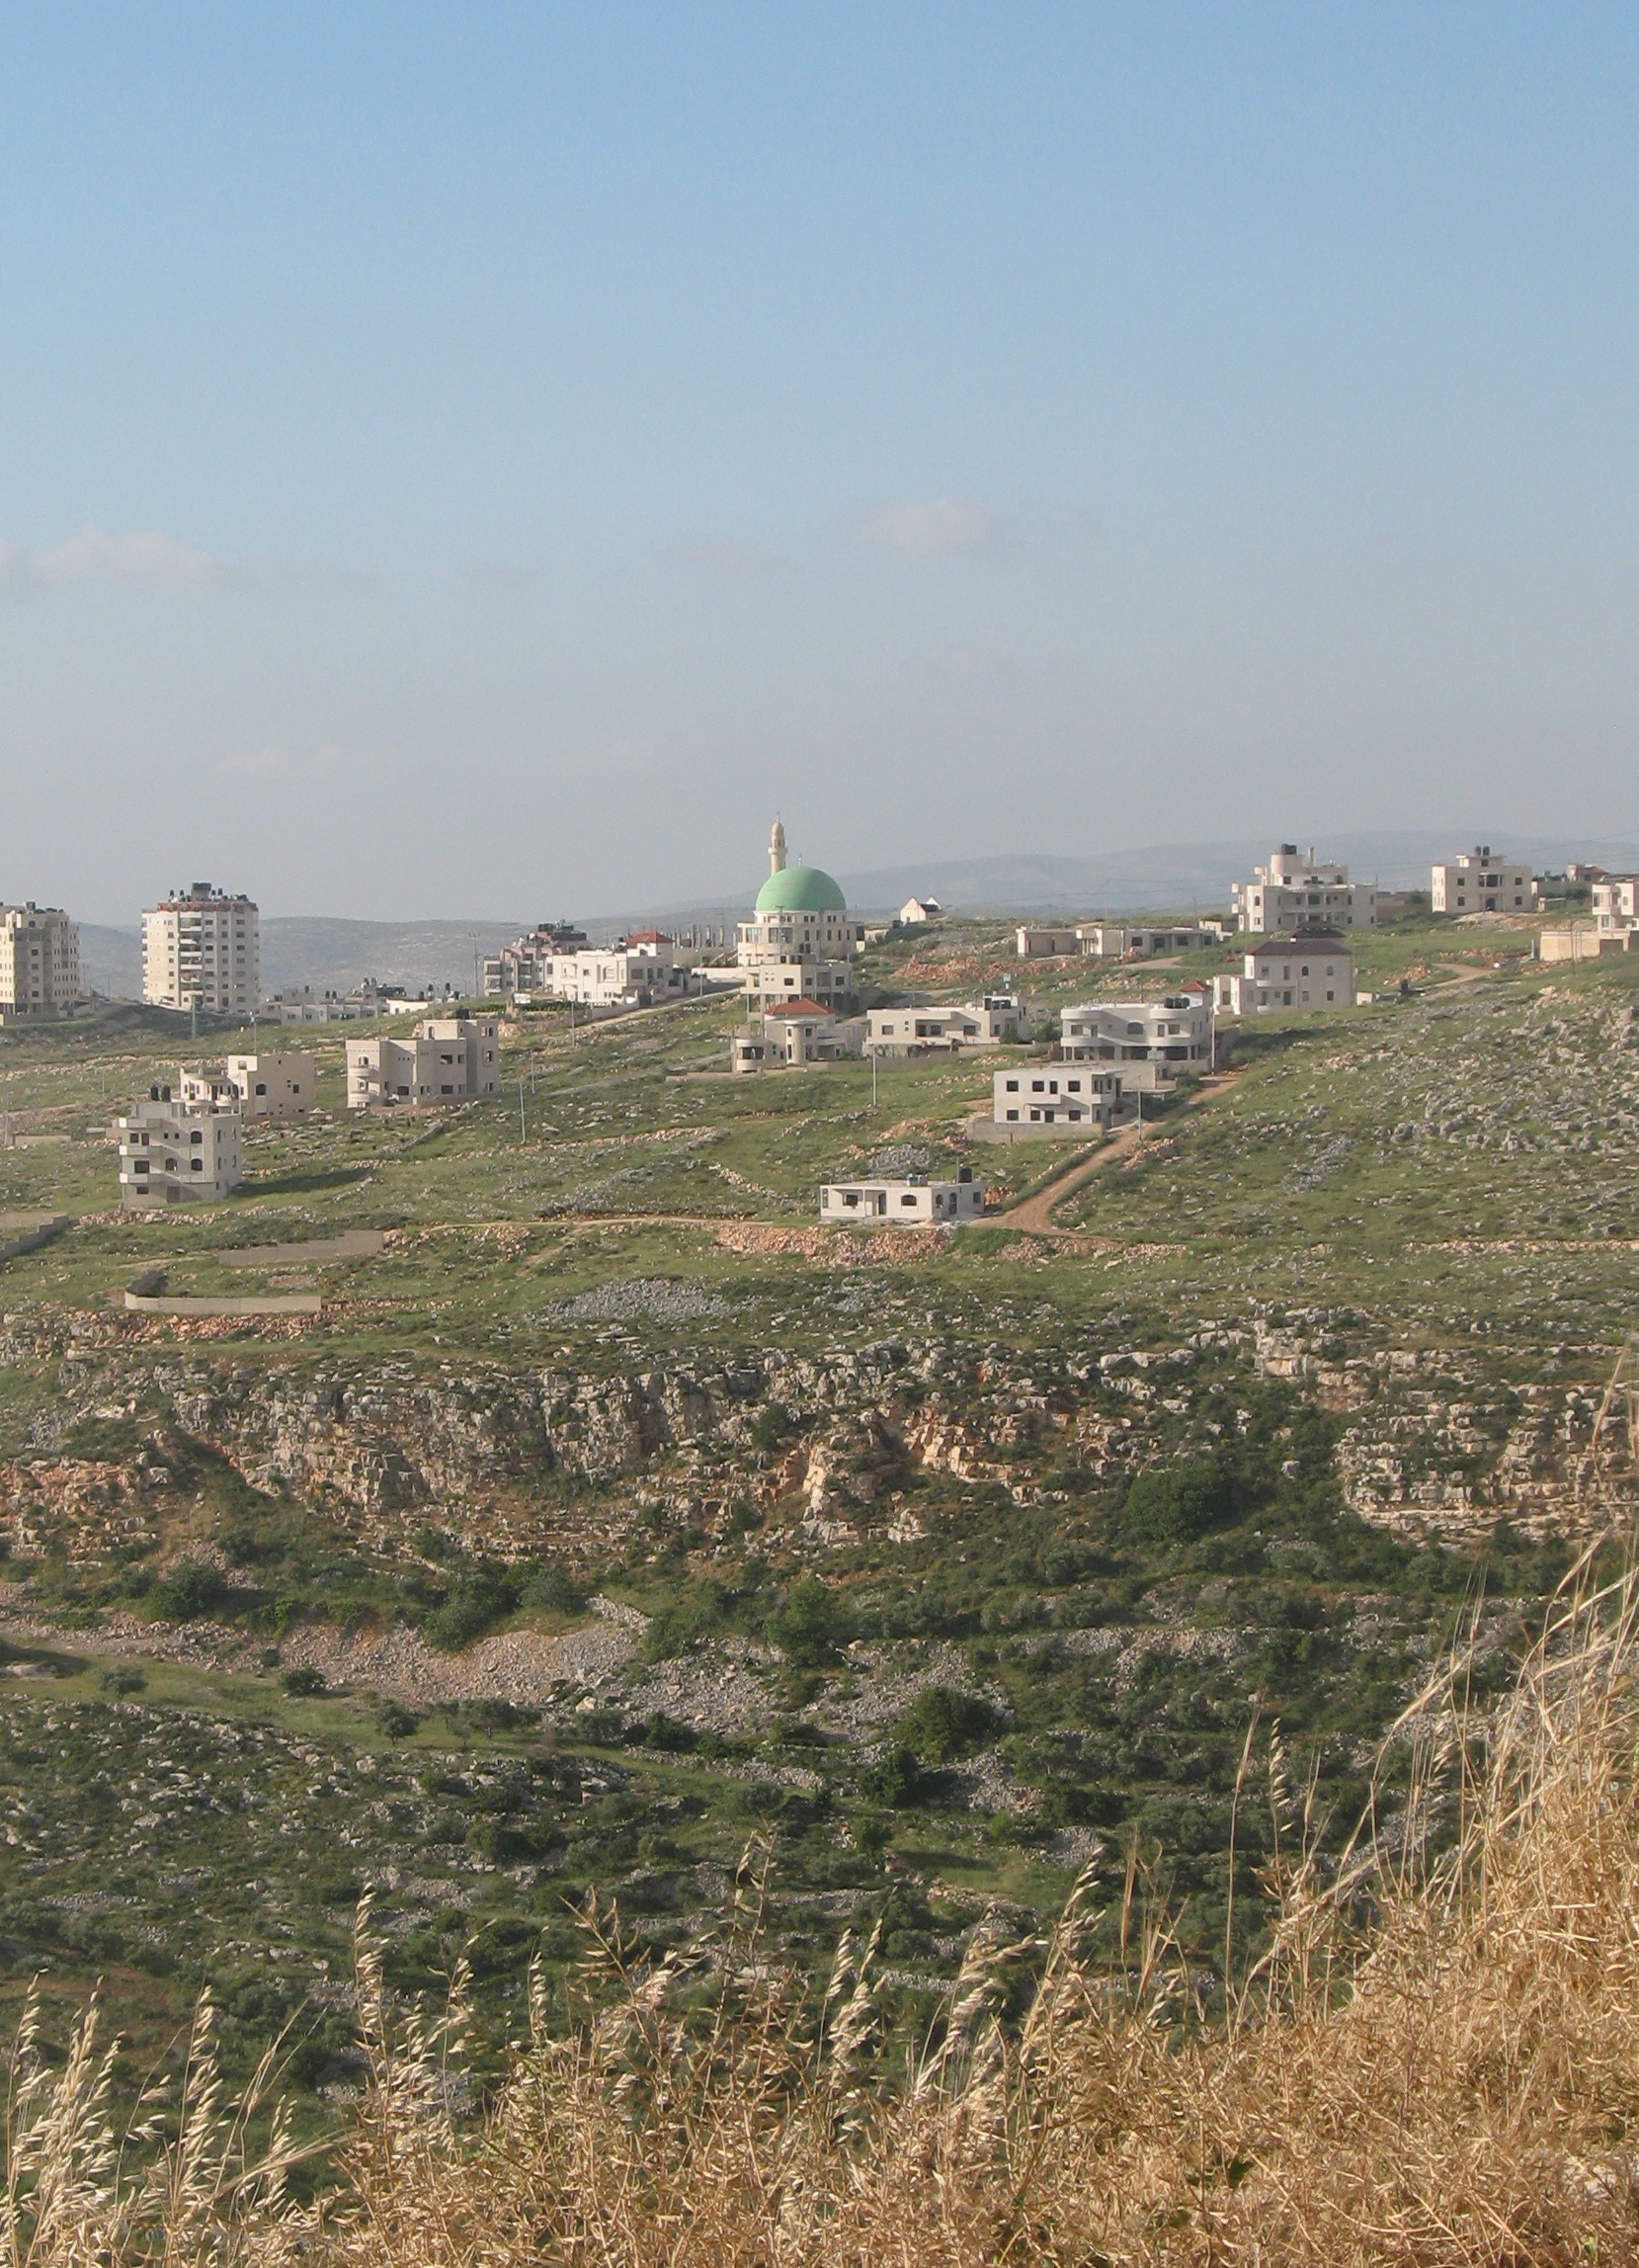 Burin - بورين : You can see Nablus from Burin.